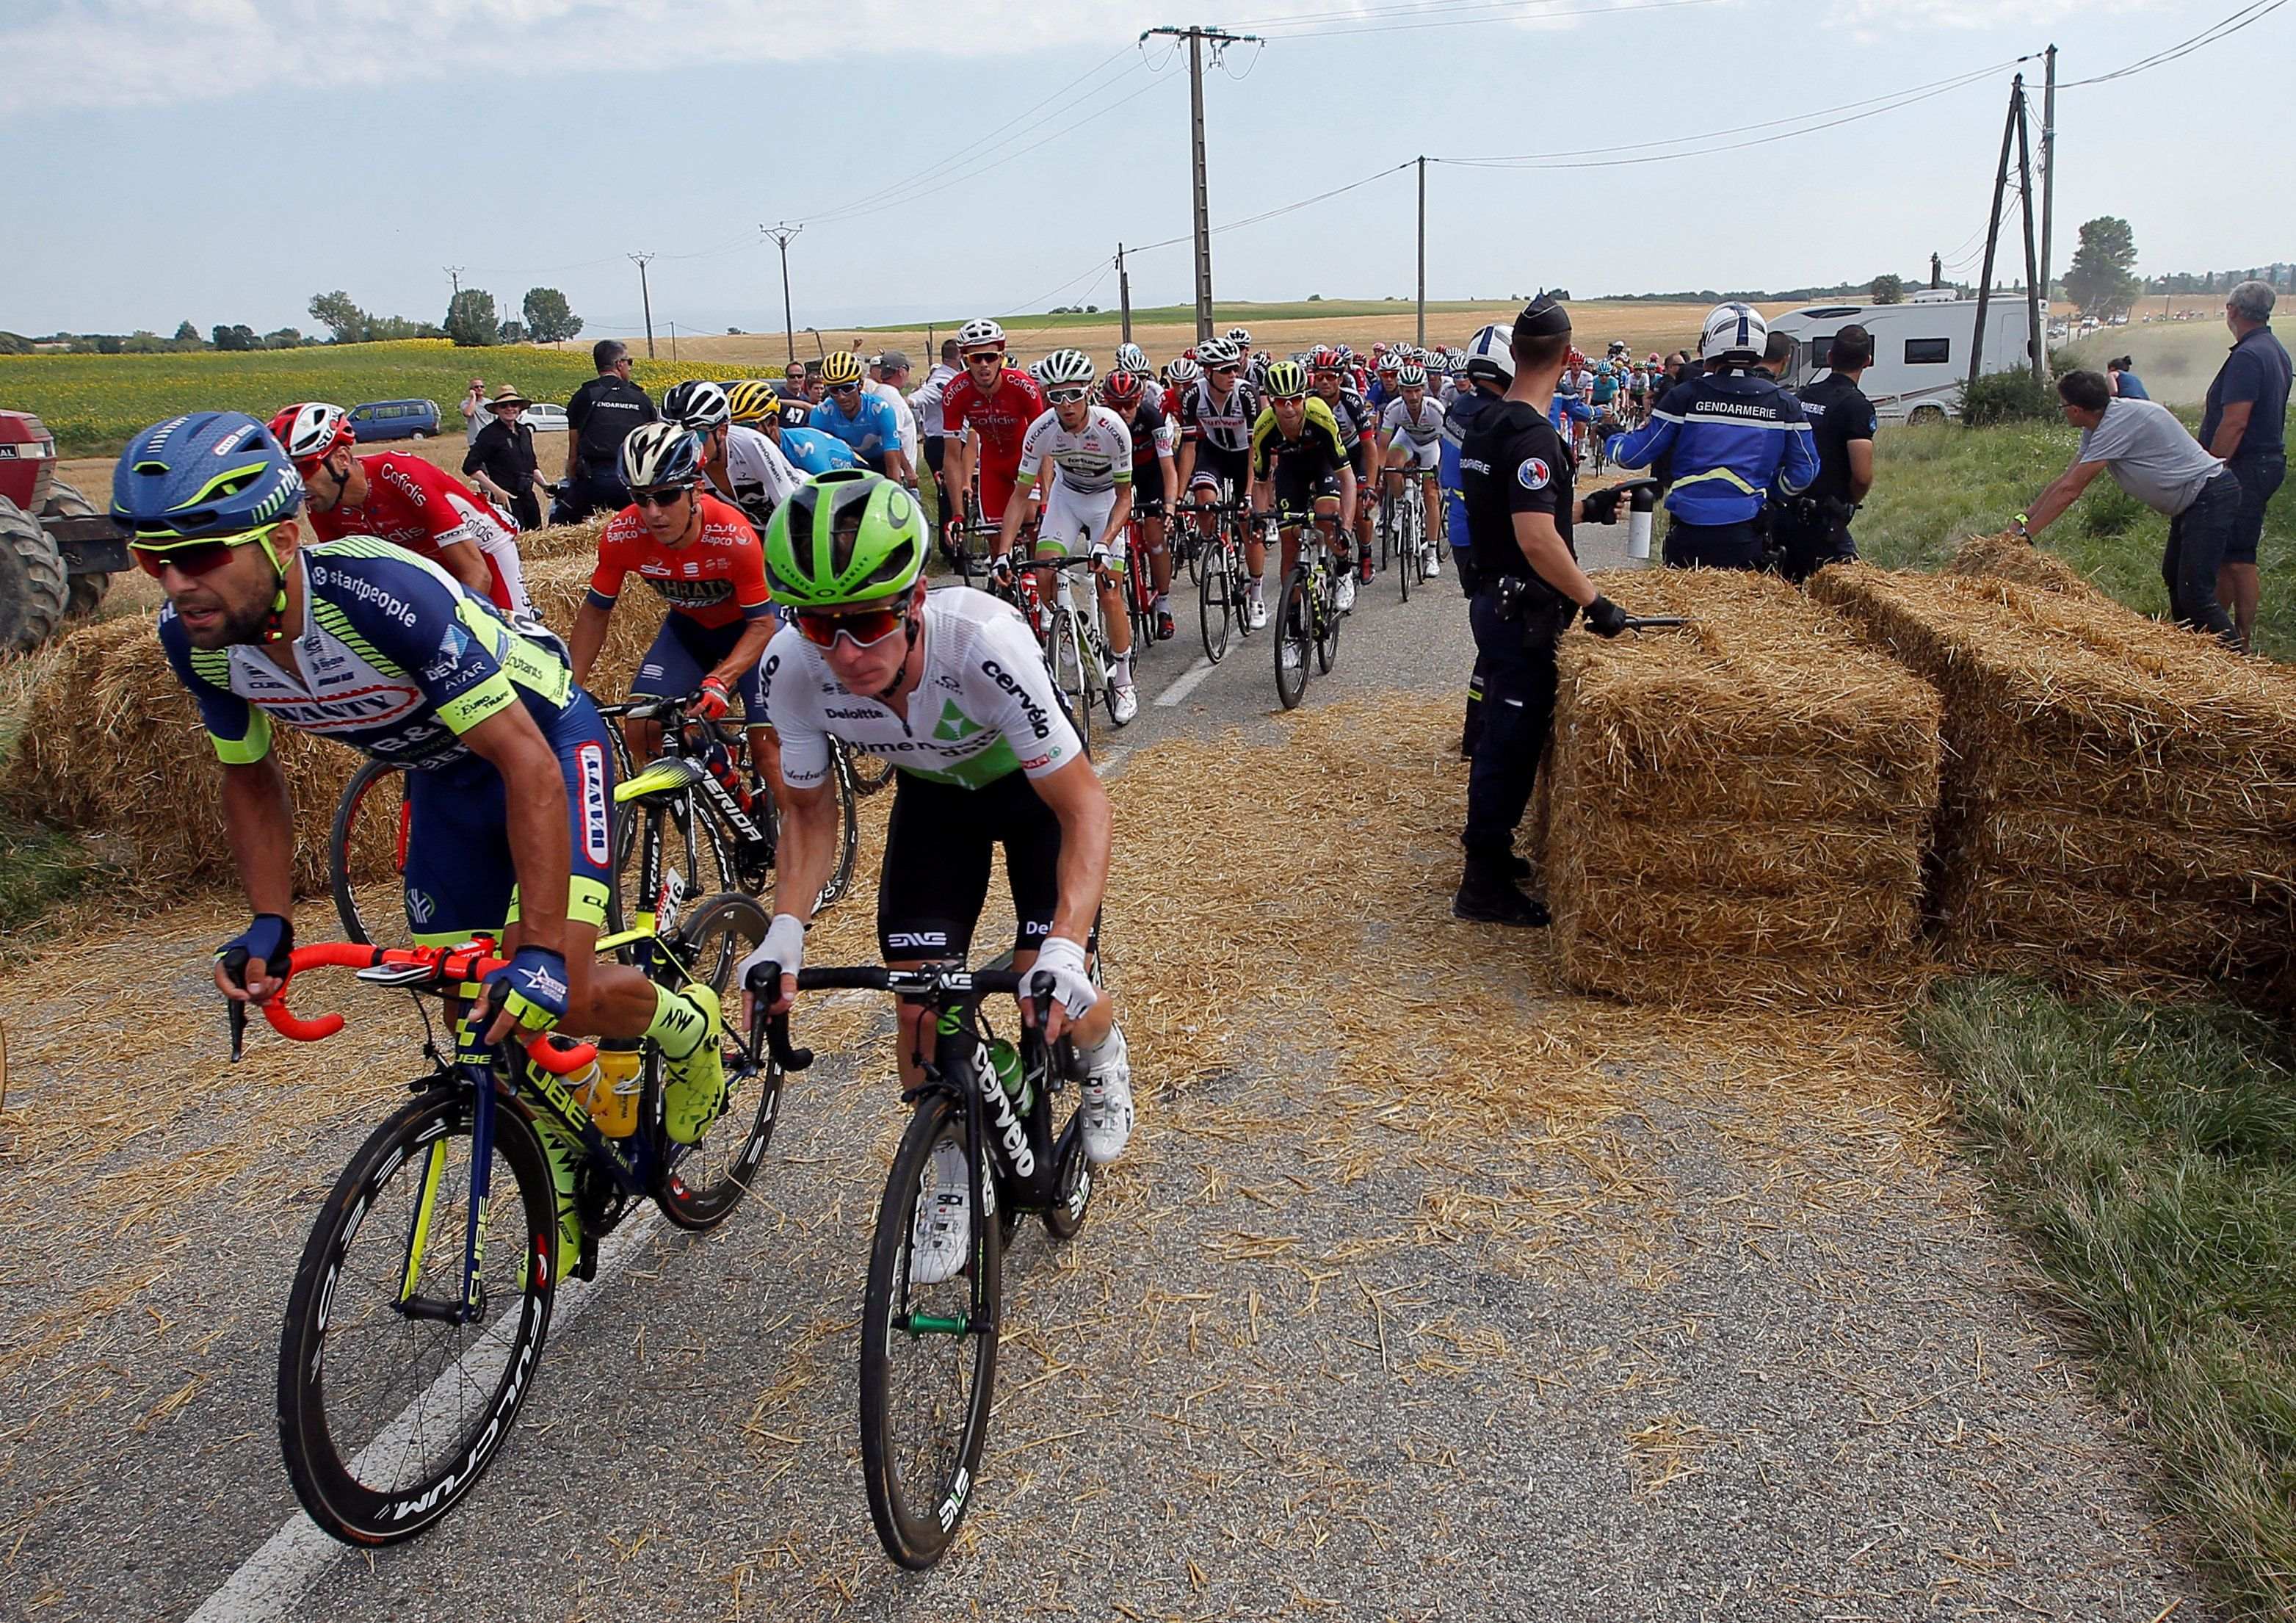 The protesters blocked the cyclists&#39 route with bales of hay. After a 15-minute break the race resumed